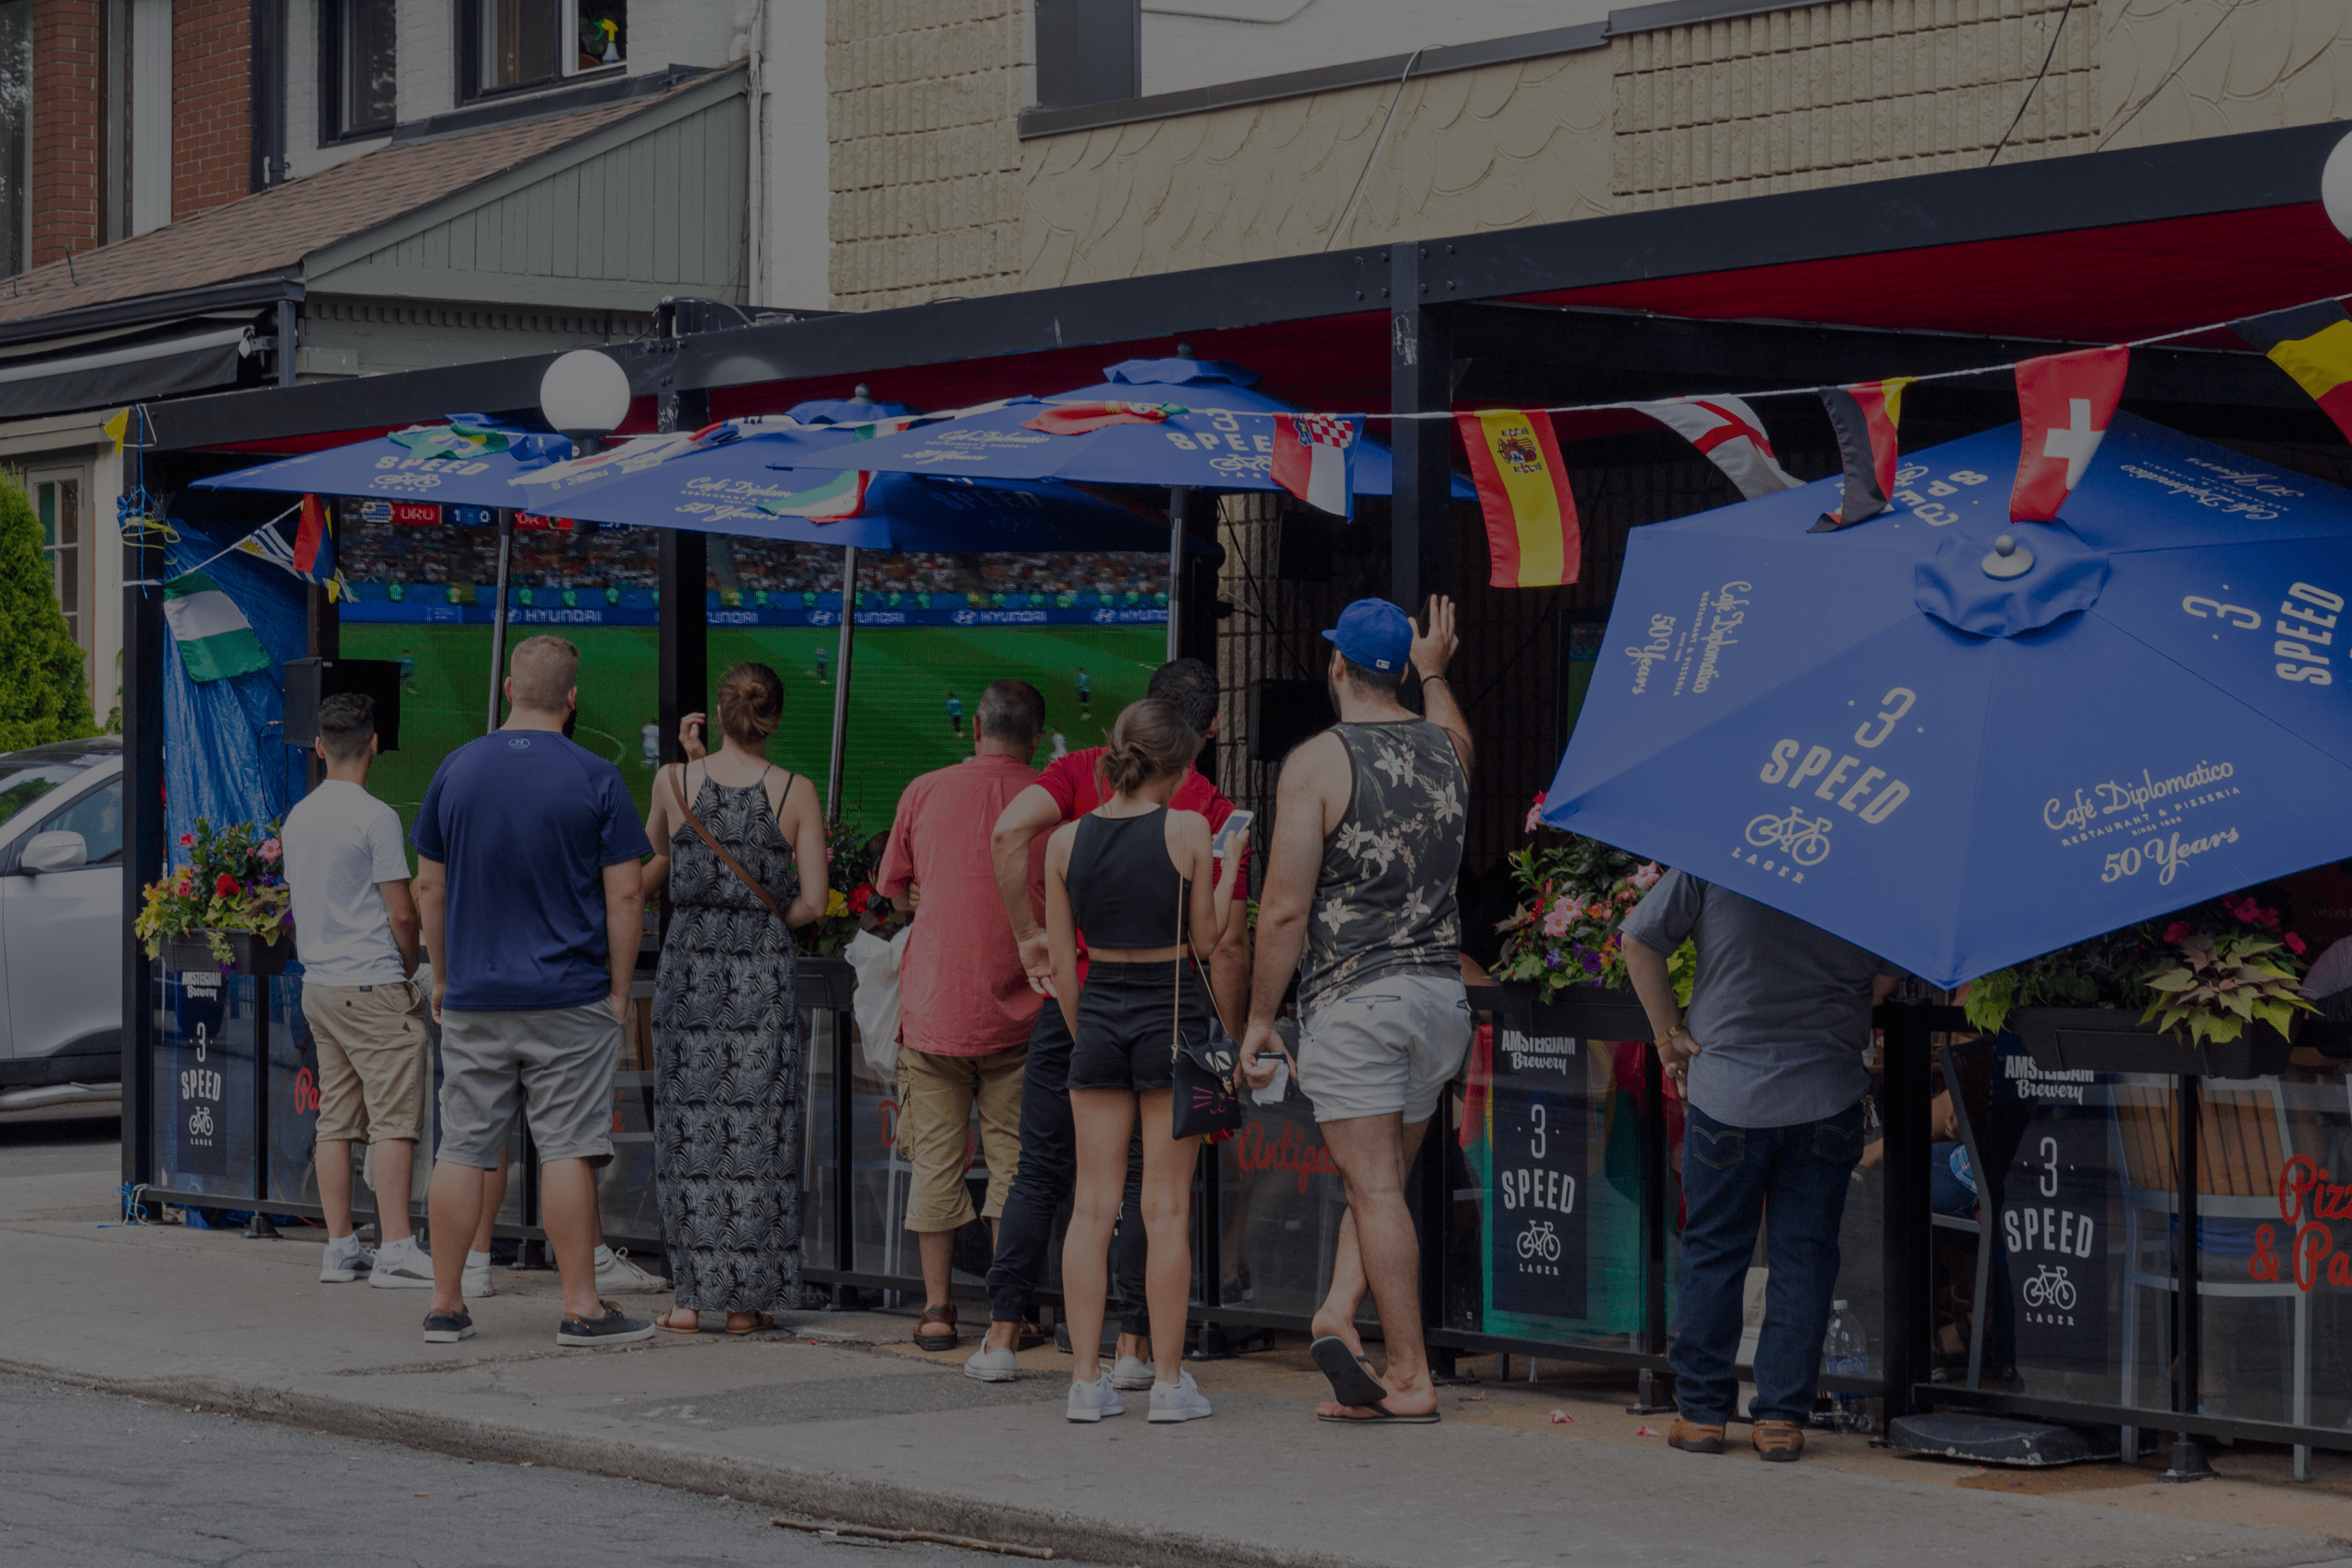 Life in Little Italy Toronto